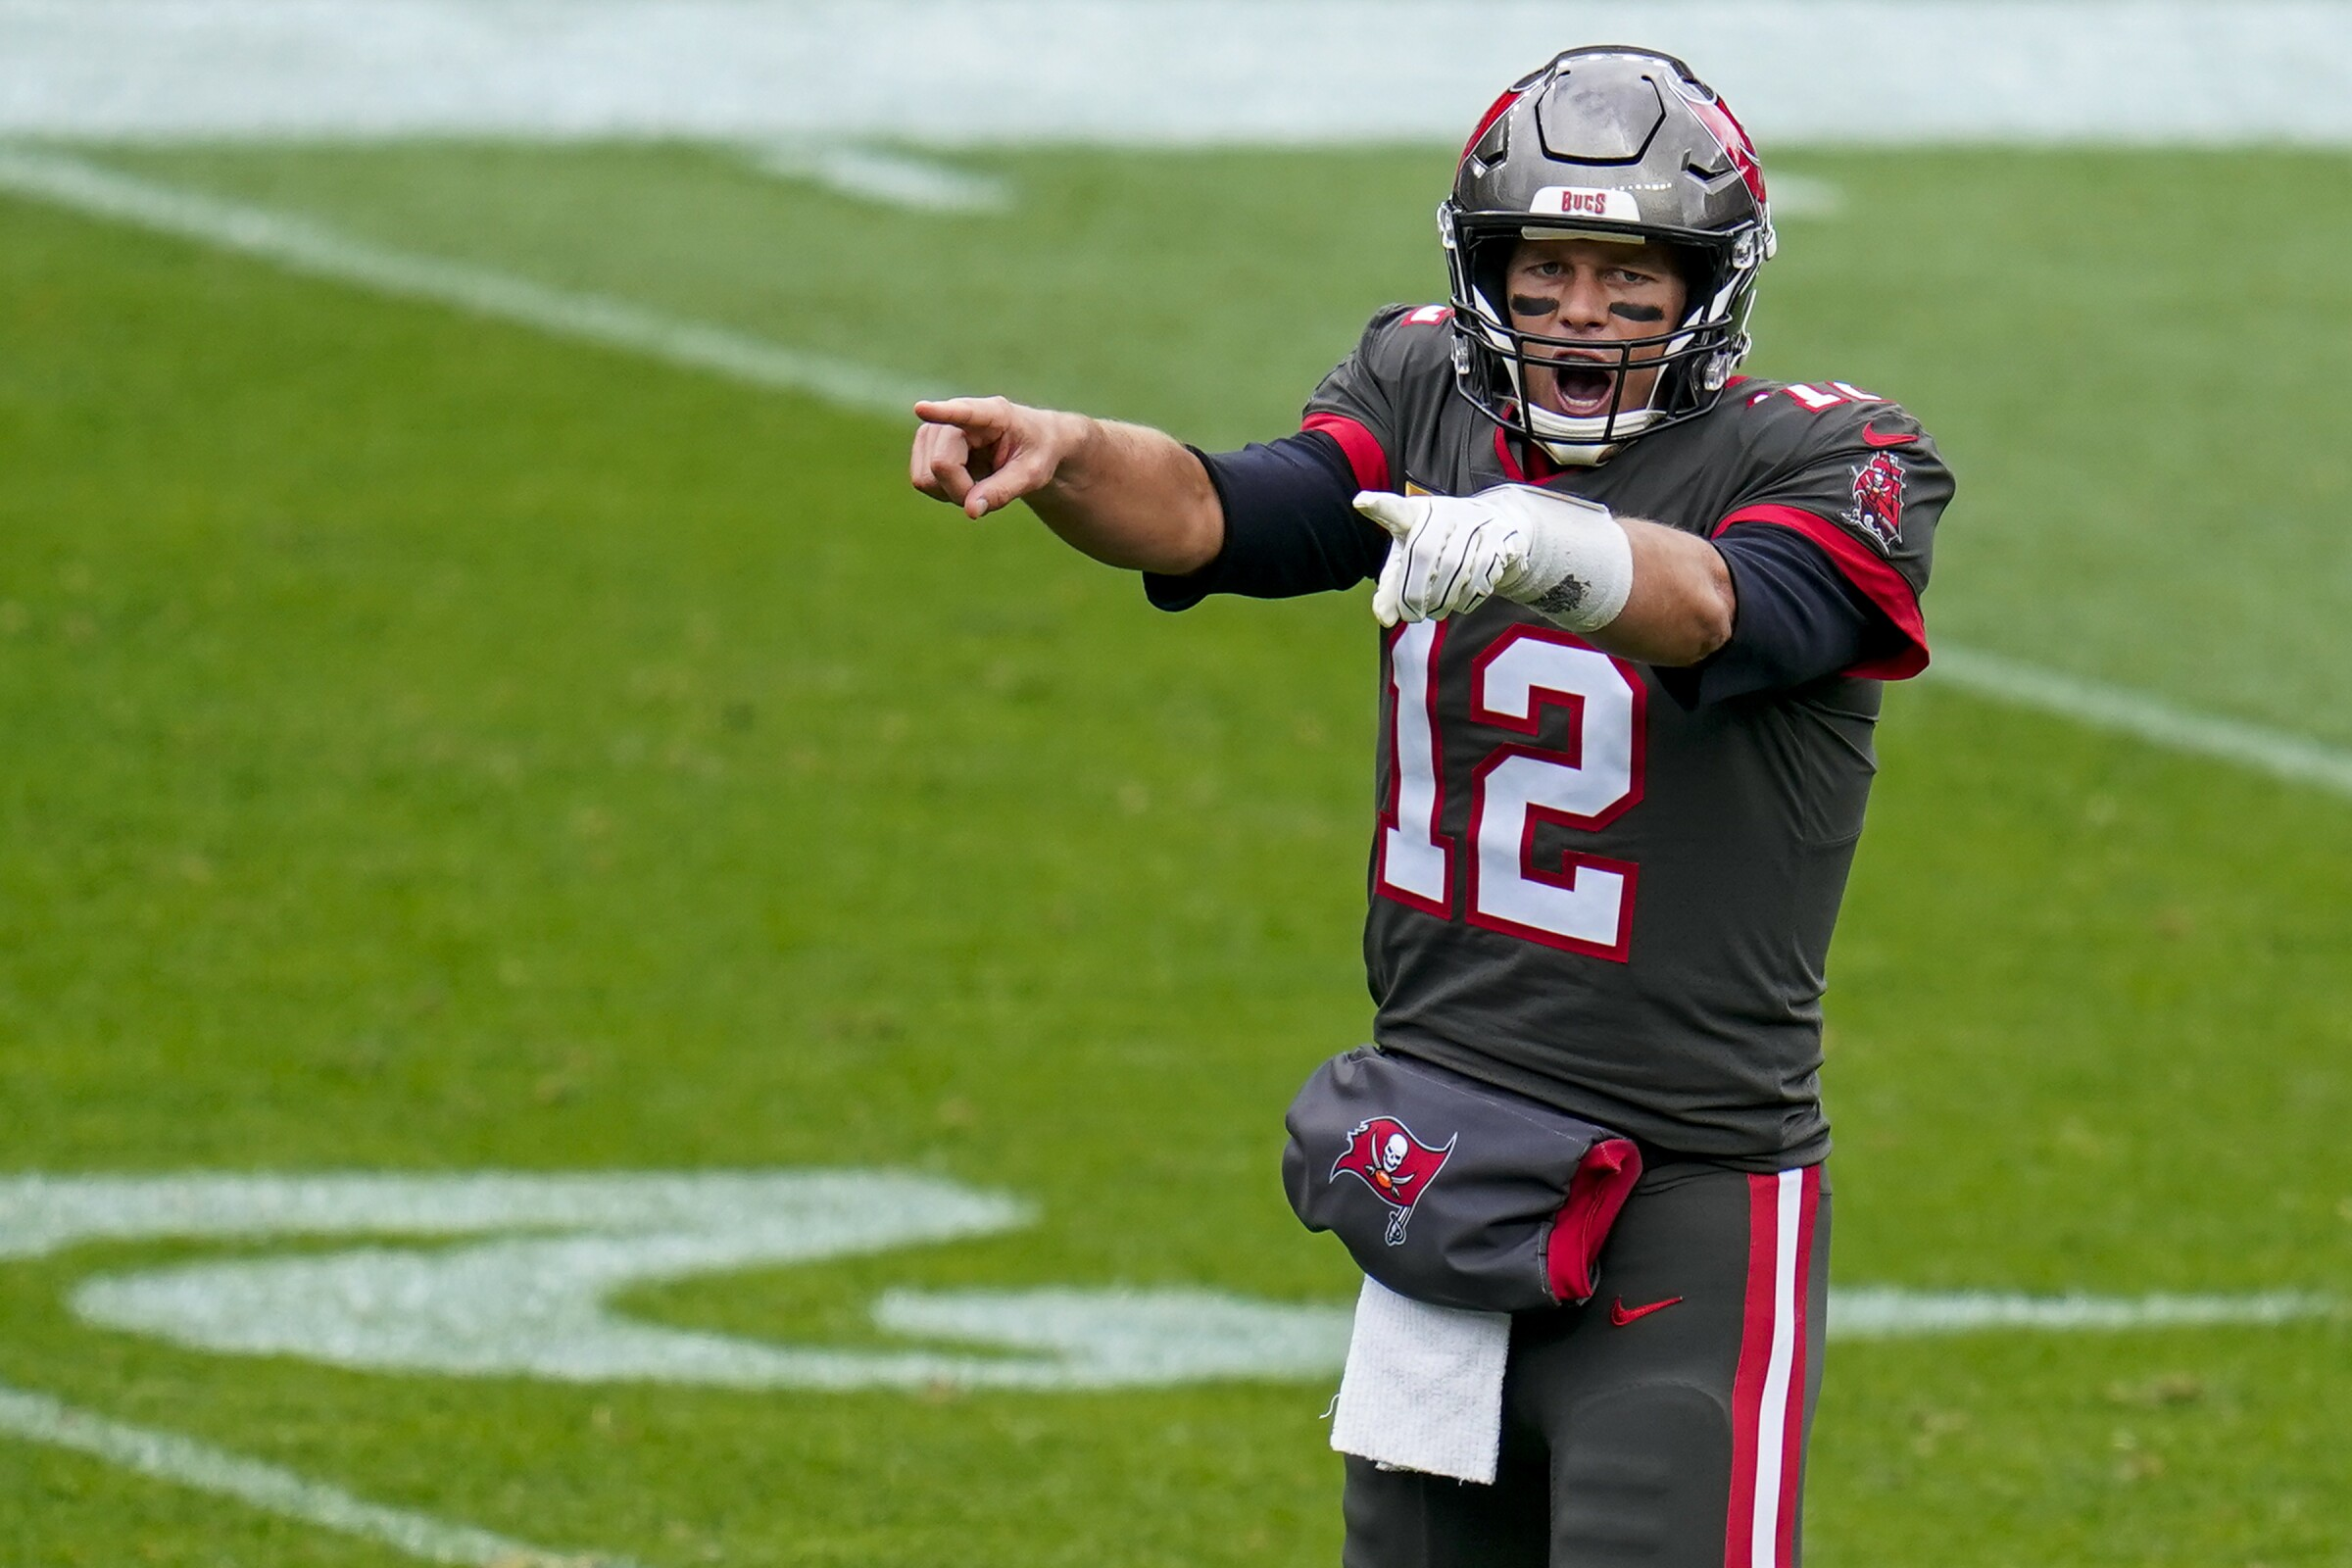 Tampa Bay Buccaneers quarterback Tom Brady signals during a win over the Denver Broncos.